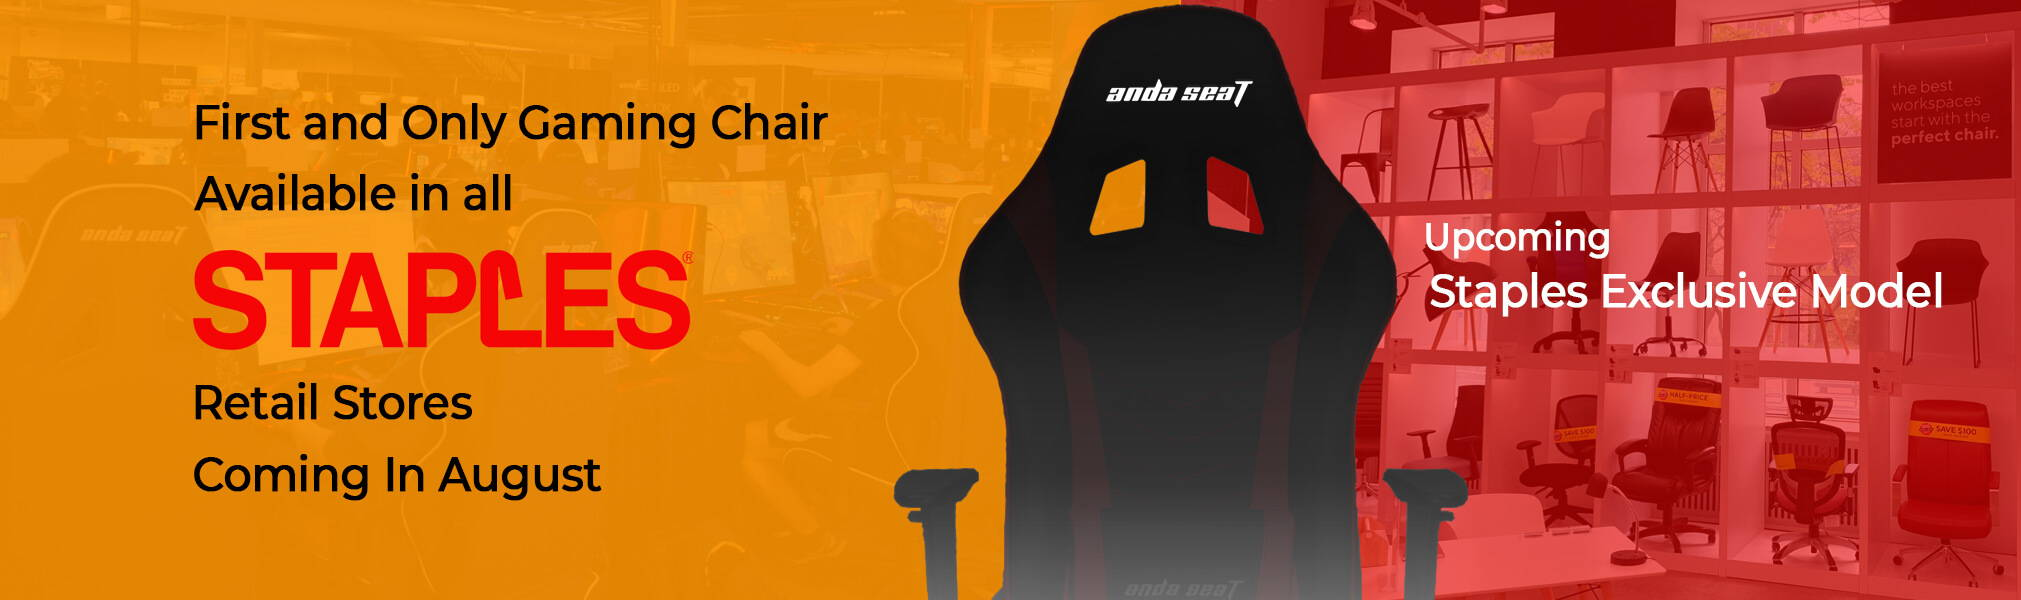 Gaming Chair at Staples